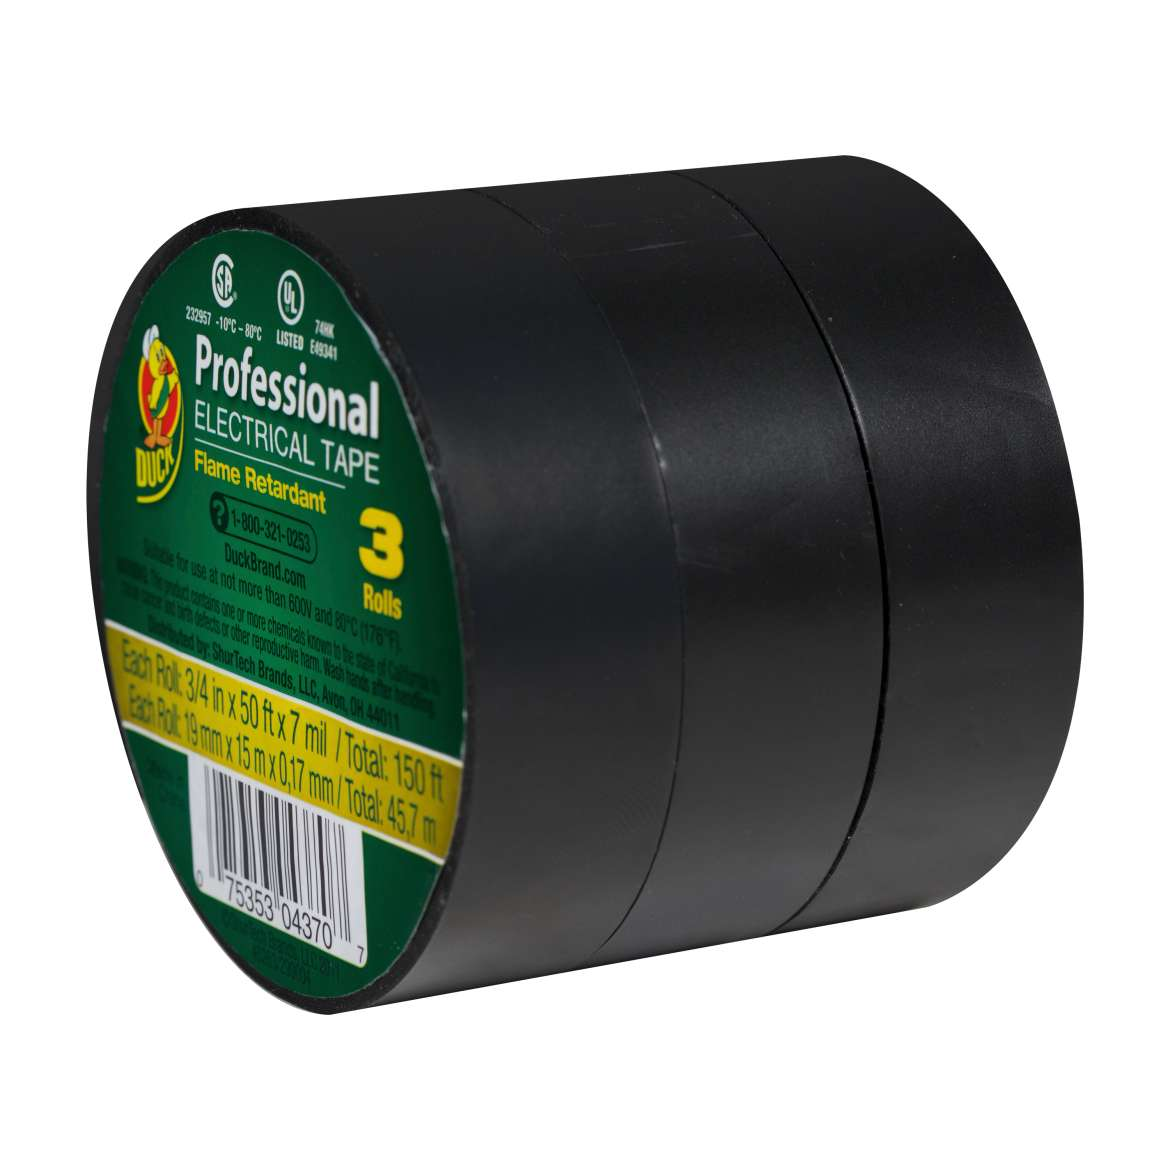 Duck® Brand Professional Electrical Tape - Black, 3 pk, .75 in. x 50 ft. x 7 mil. Image